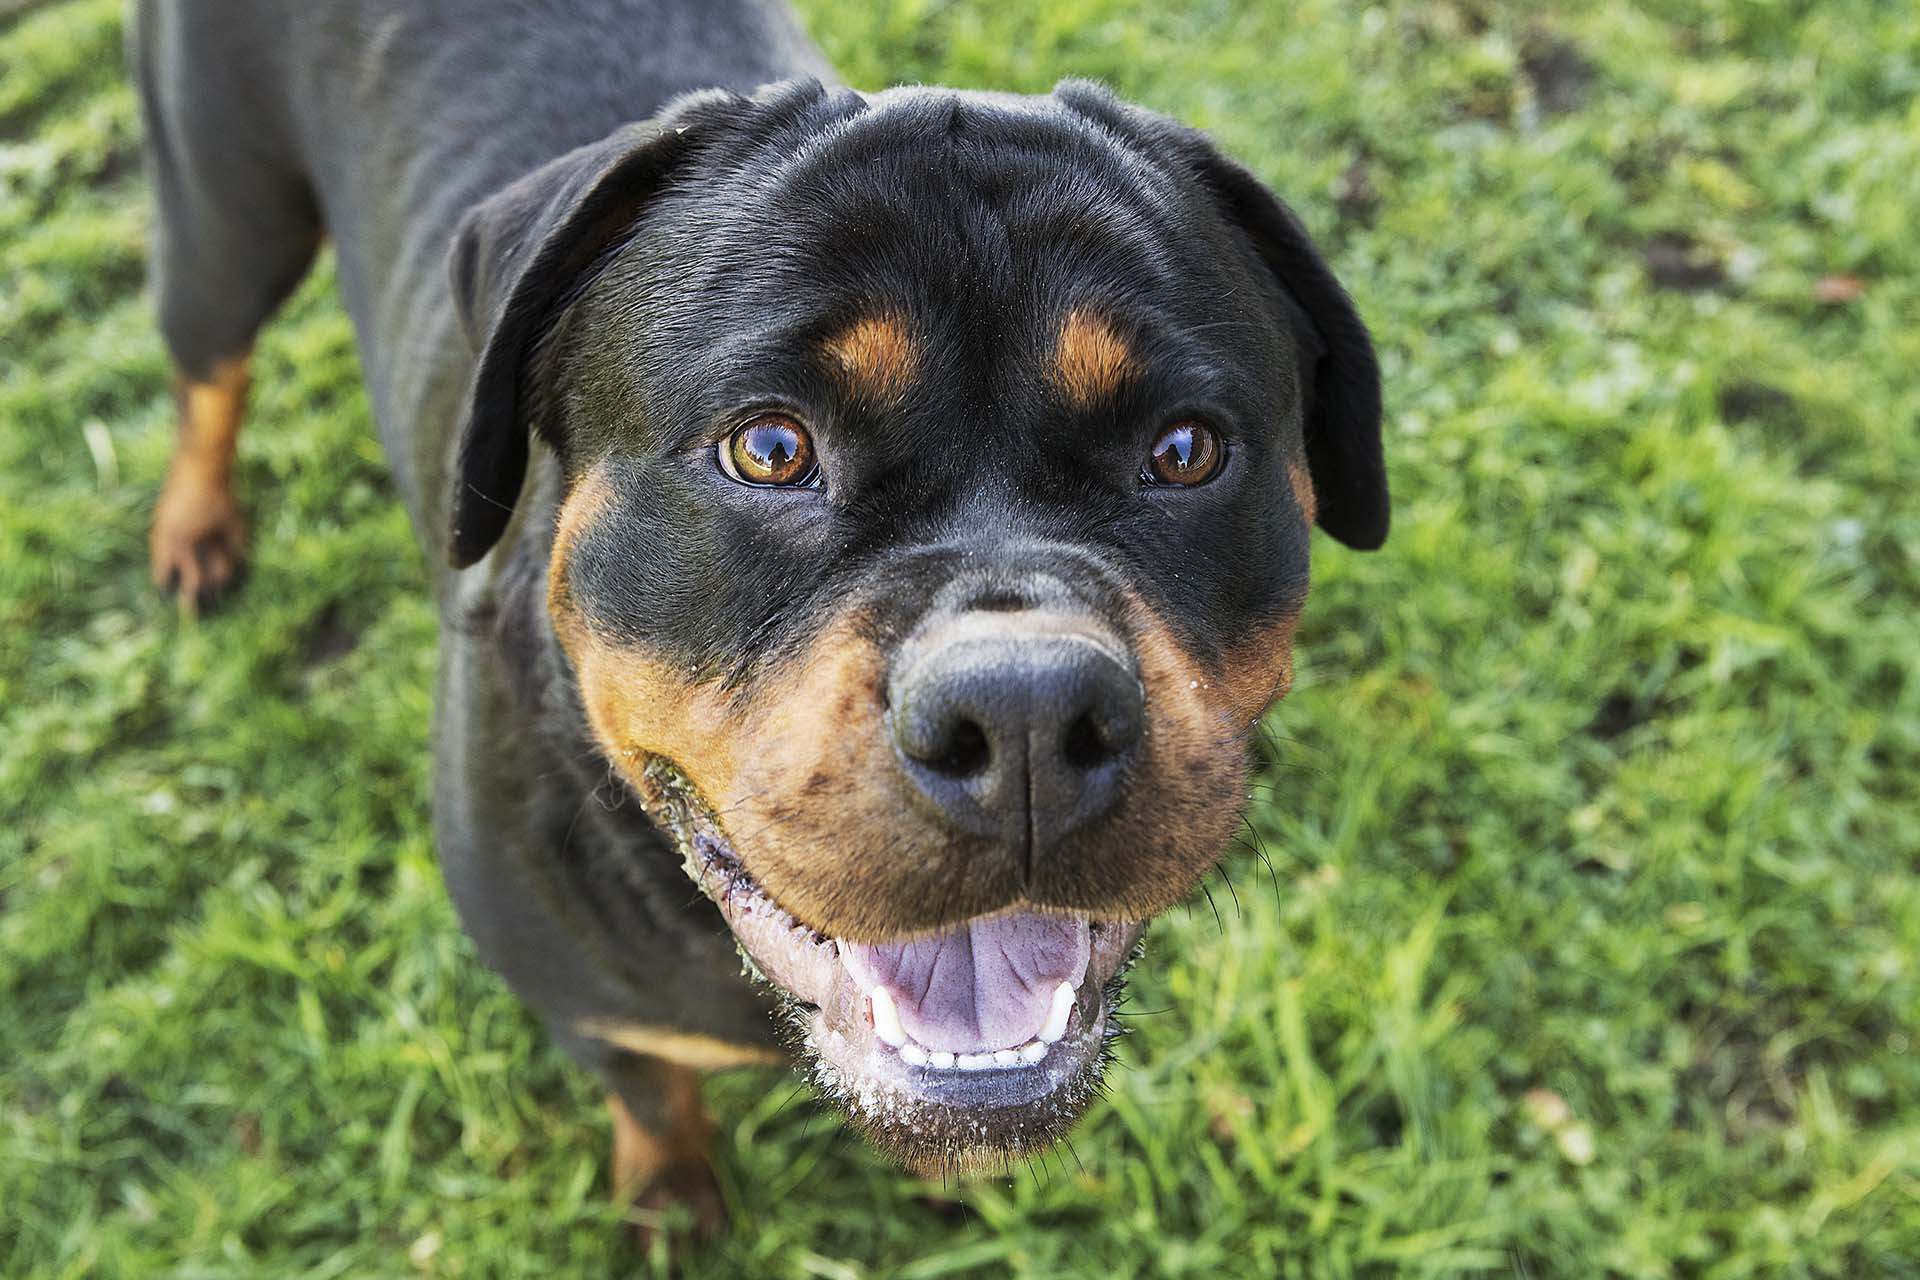 Ferrari of C & G German Rottweilers aims to please. She is incredibly smart, energetic and loving which makes her a true superstar.